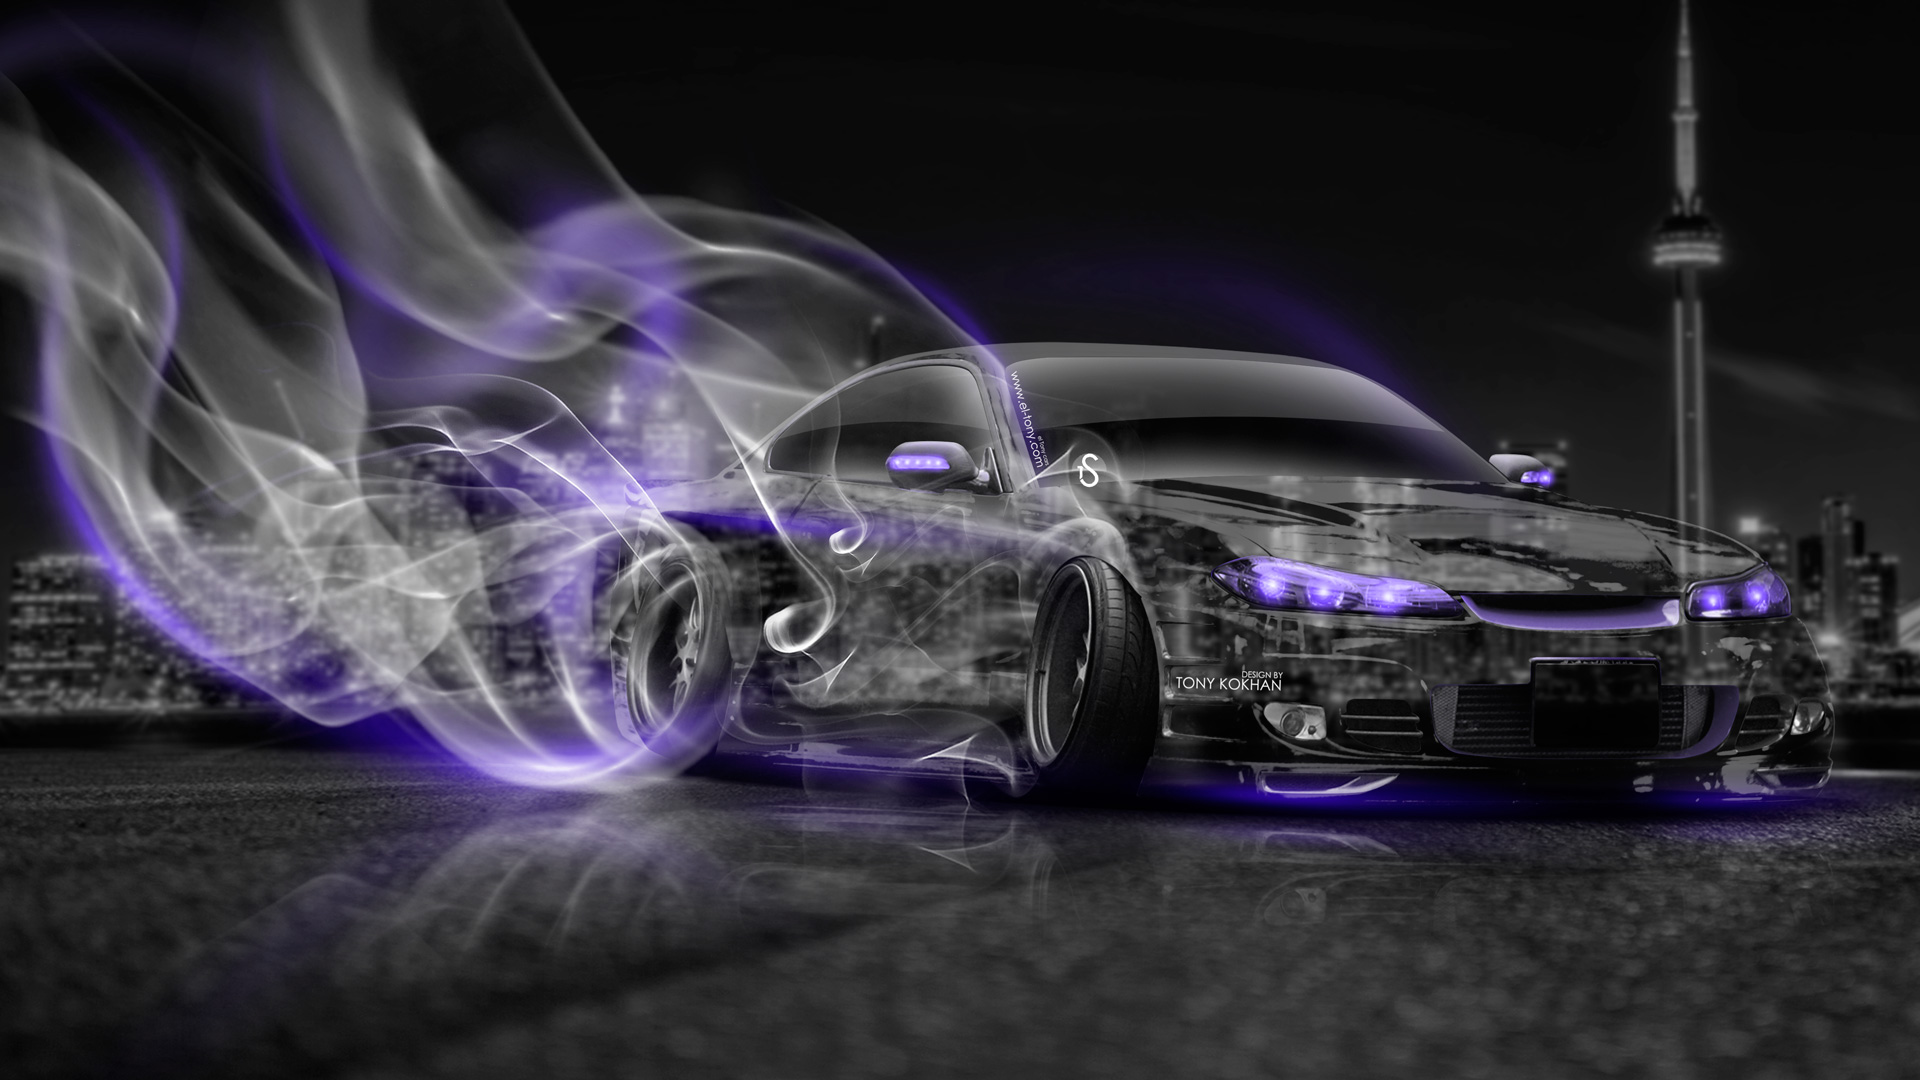 Superb Nissan Silvia S15 JDM Crystal City Drift Smoke